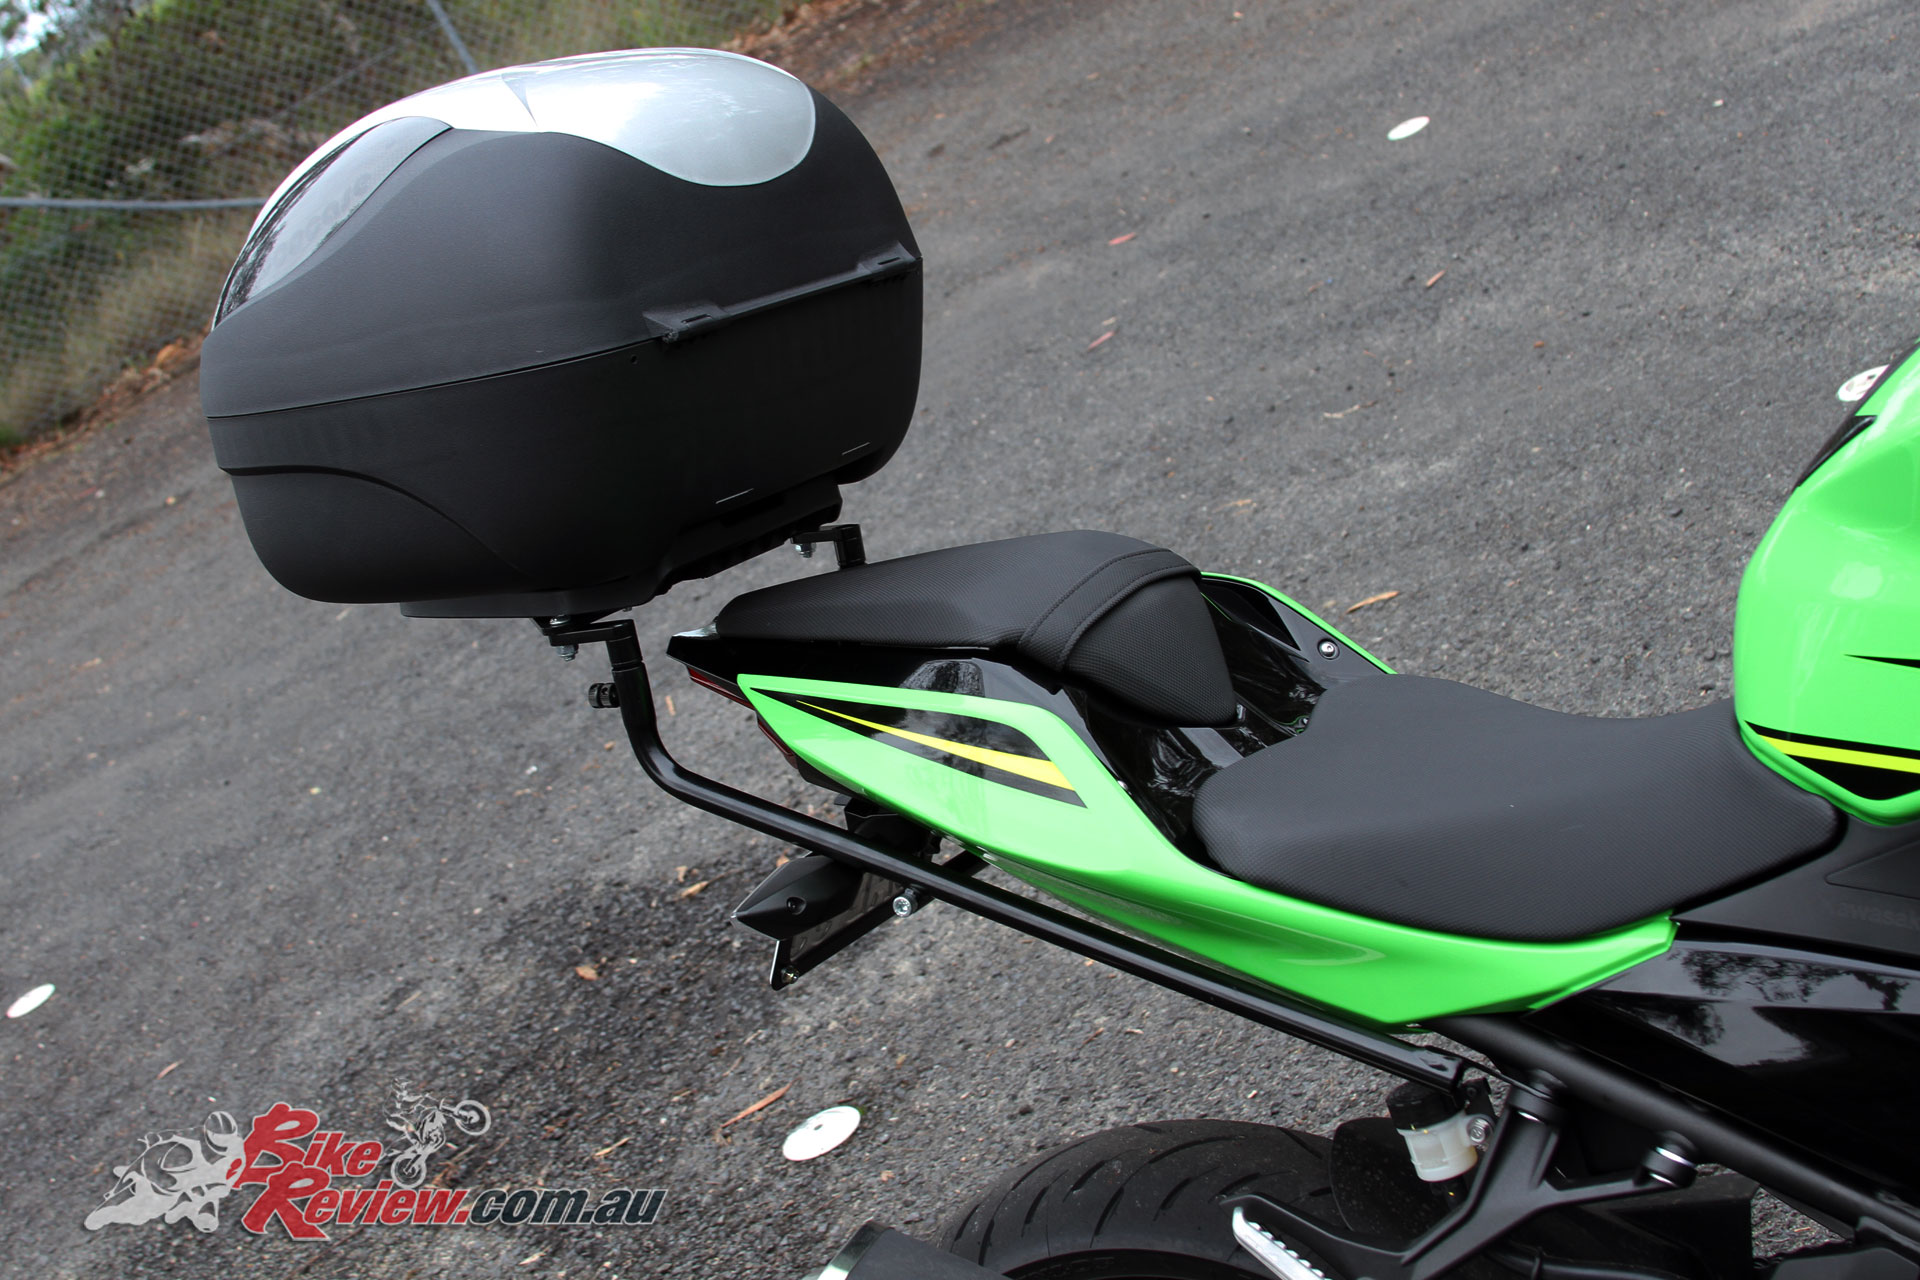 We fit a Ventura rack, Coocase 36L Wizard topbox and Oggy Fender Eliminator to our Long Term Ninja 400